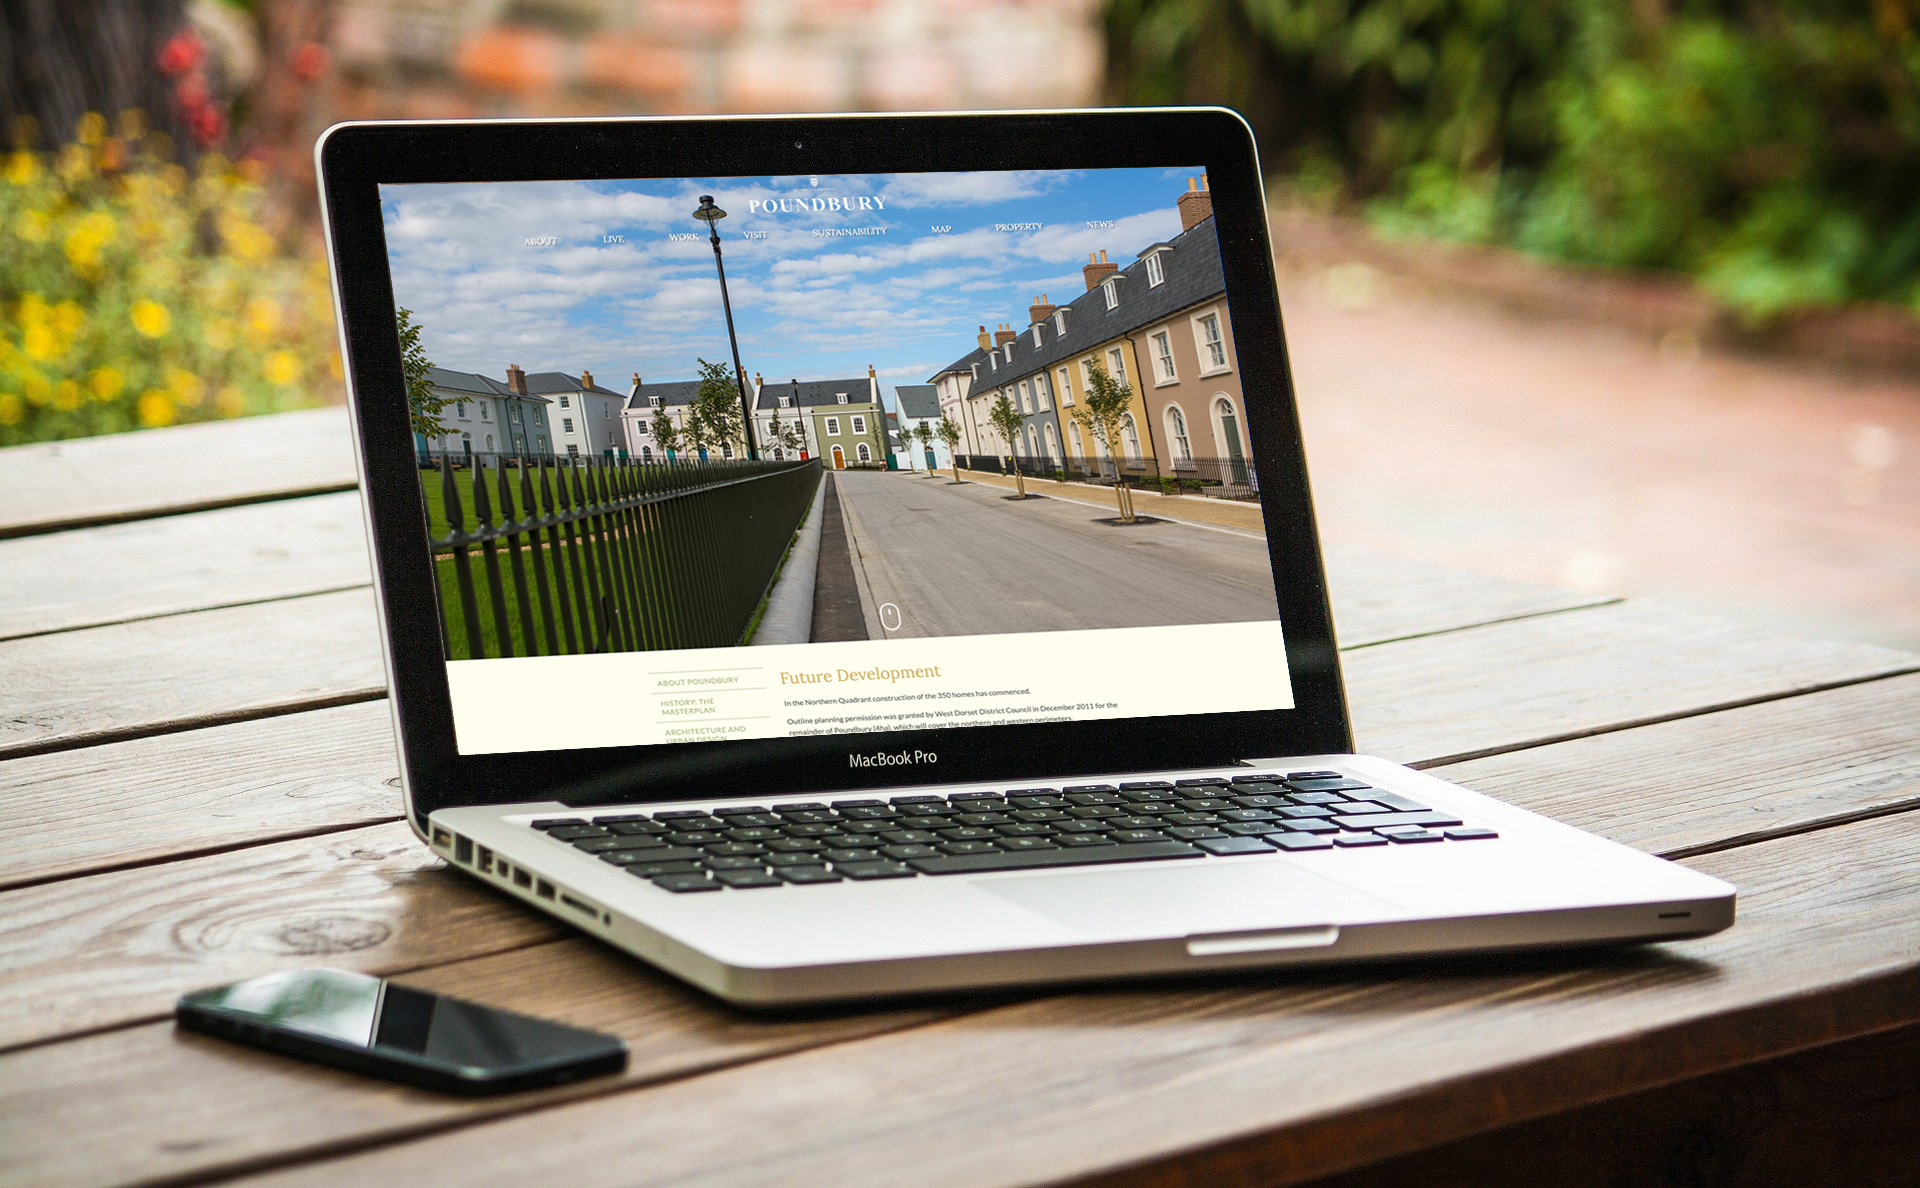 Poundbury website